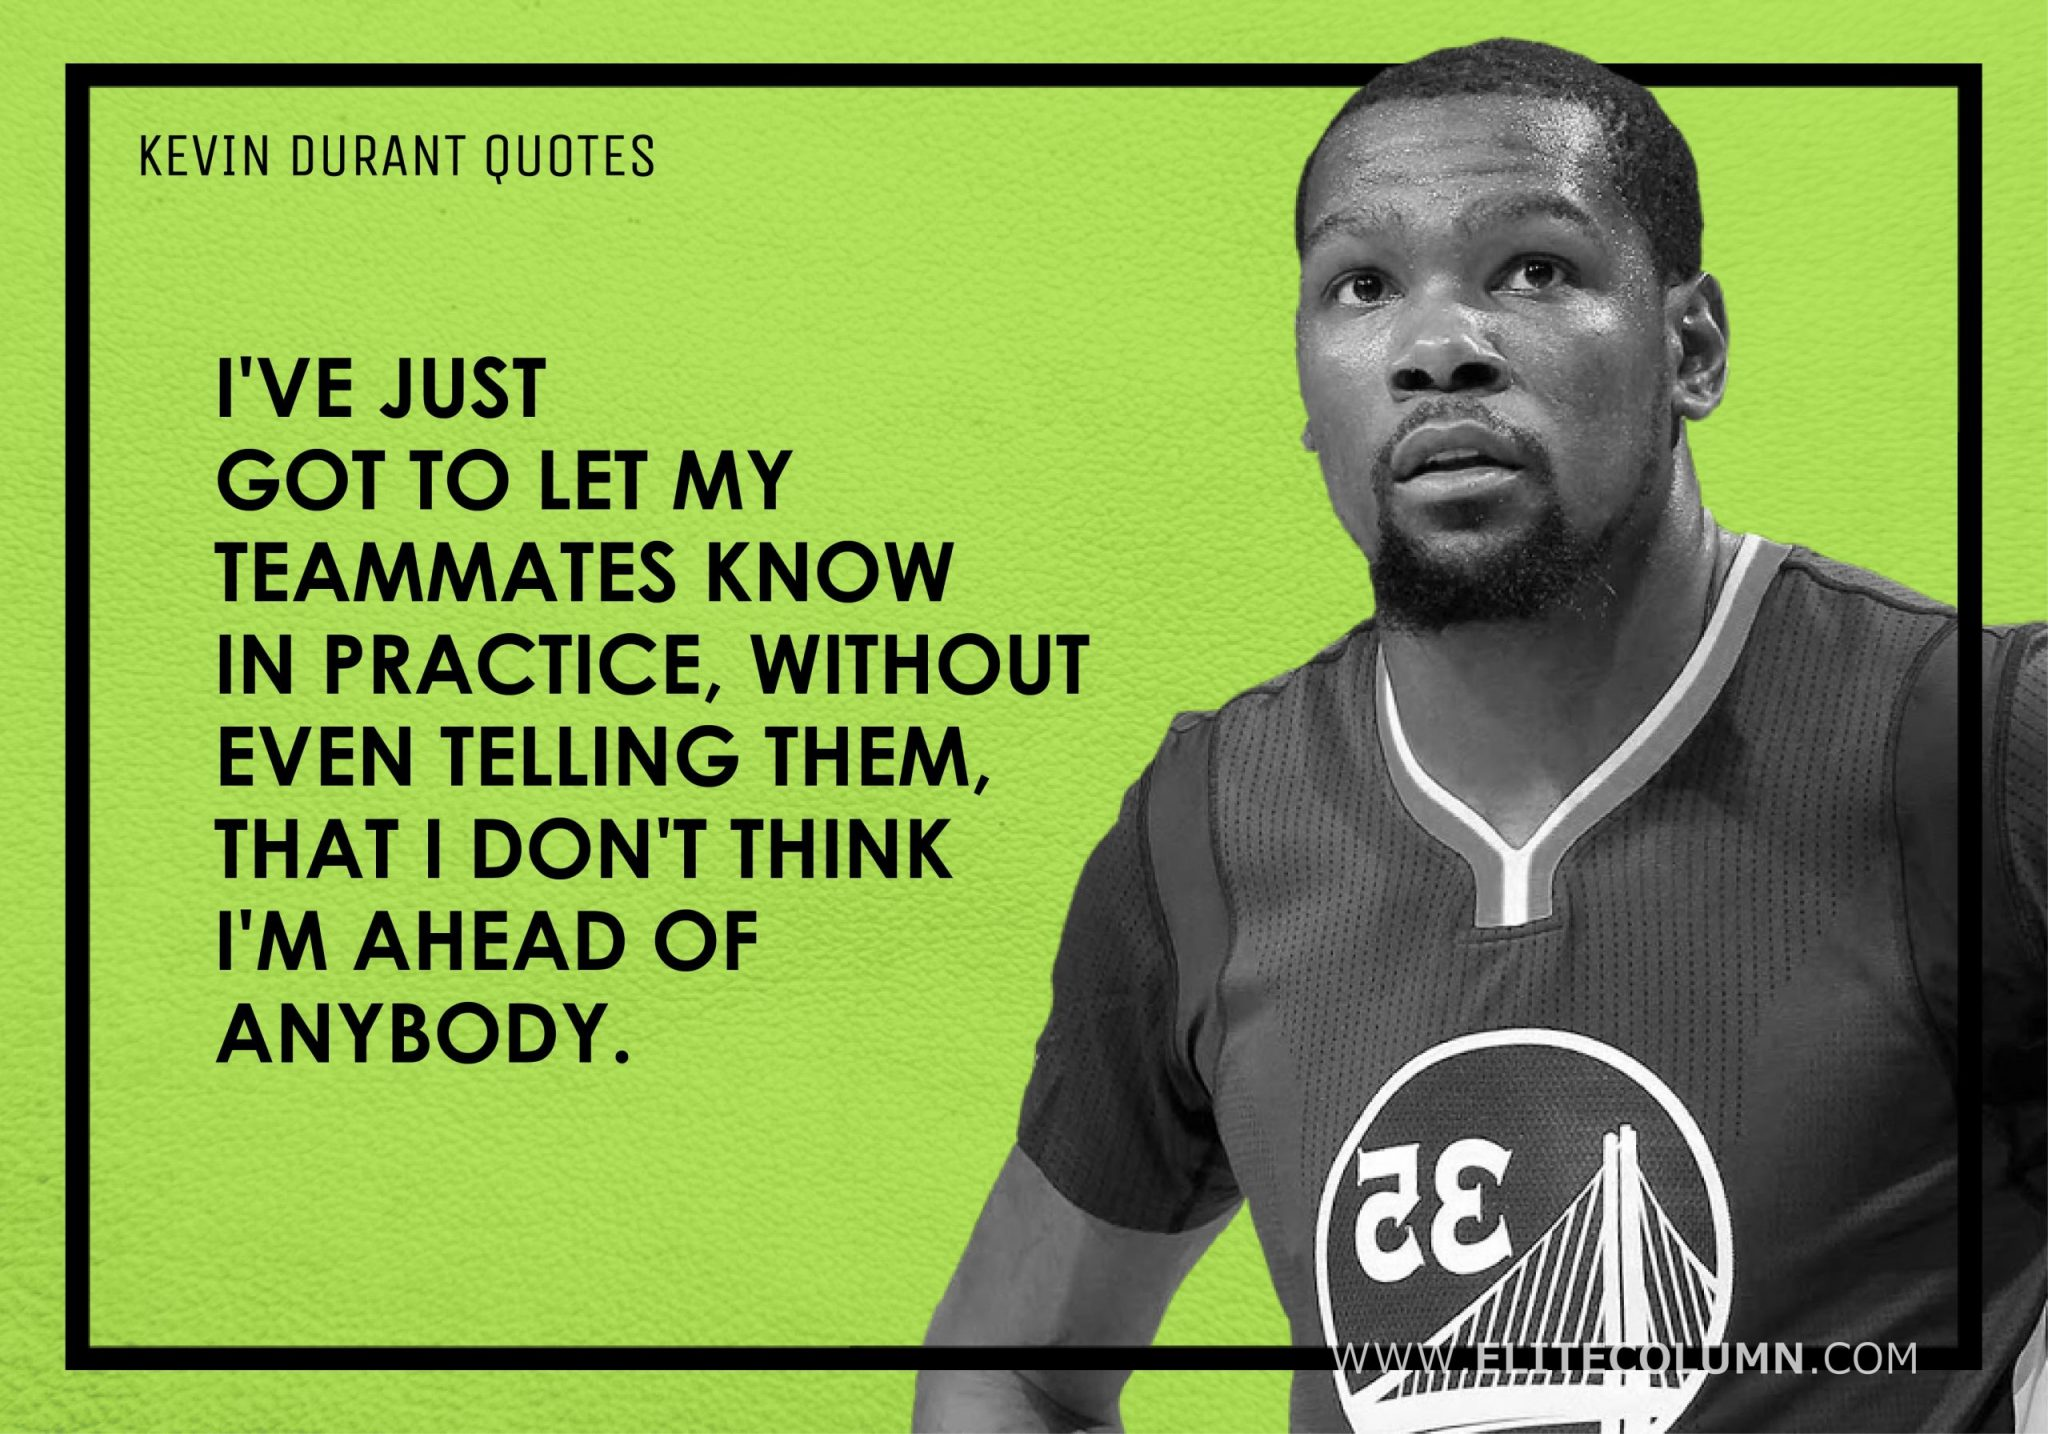 Kevin Durant Quotes (1)